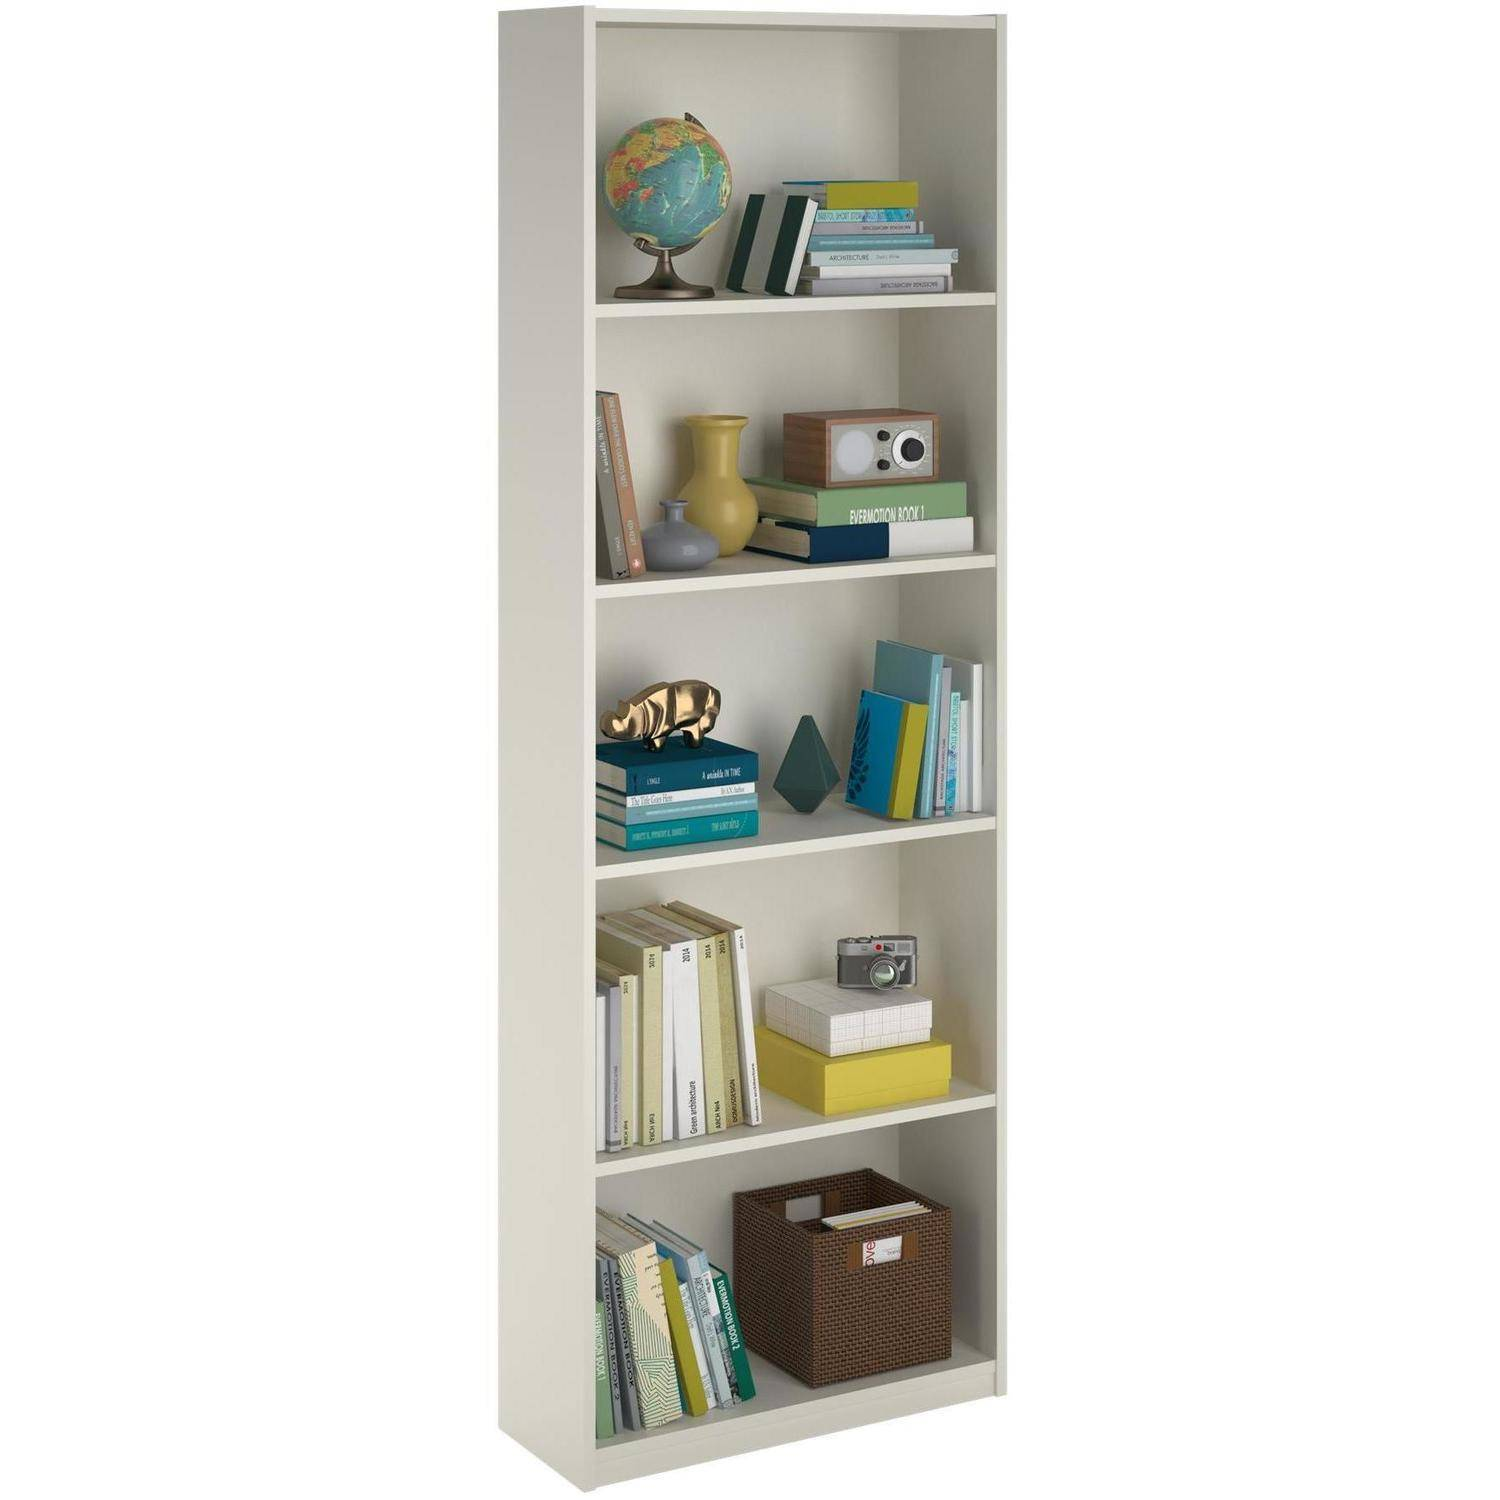 shelf bookcase storage home office shelving bookshelf white